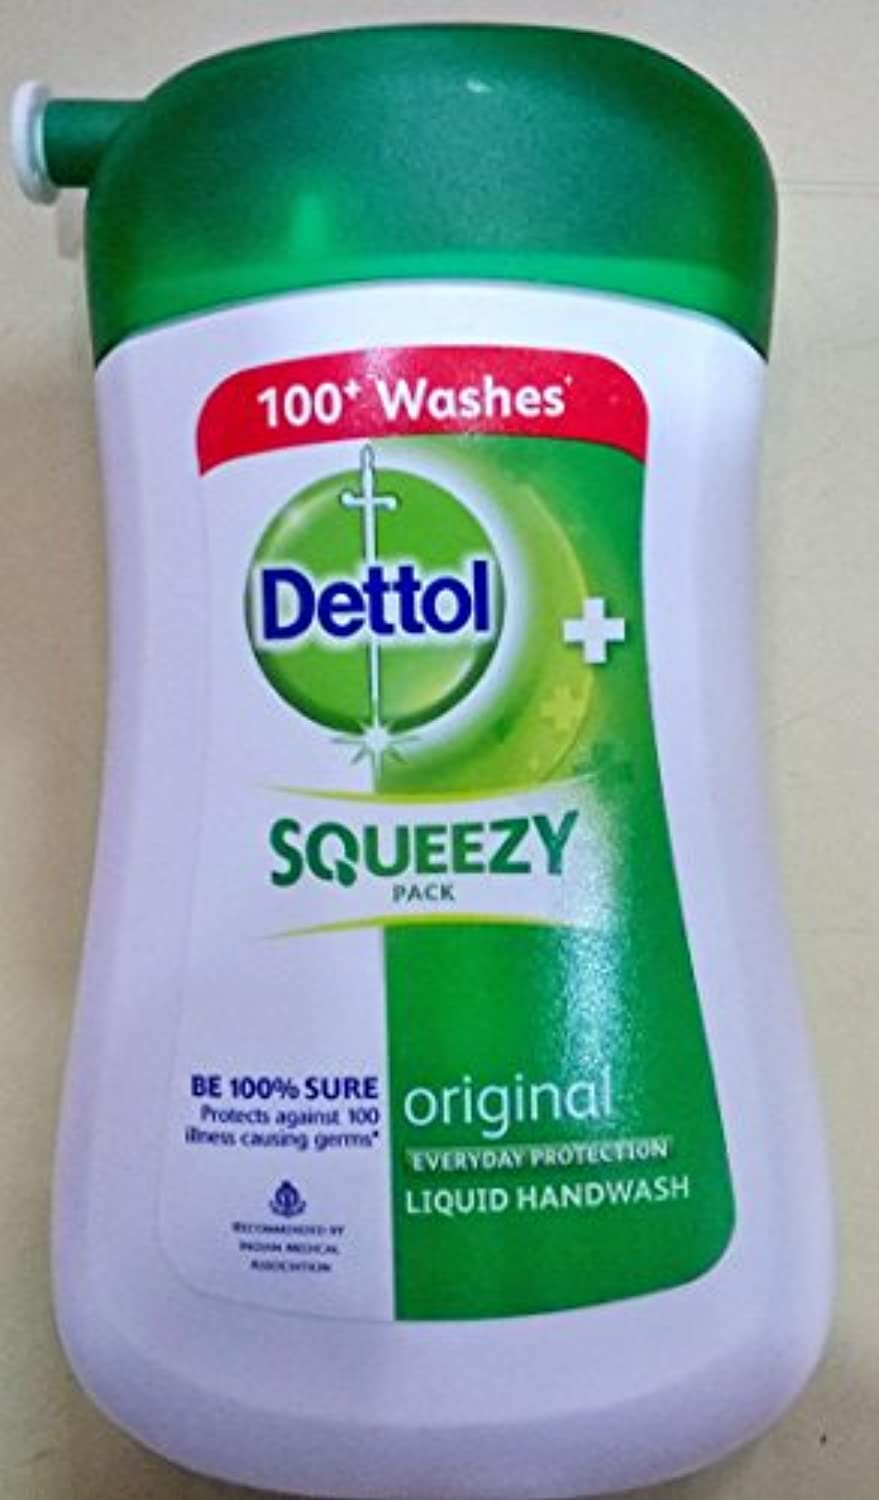 調和のとれた嵐バーベキューDETTOL SQUEEZY PACK LIQUID HANDWASH 100ML